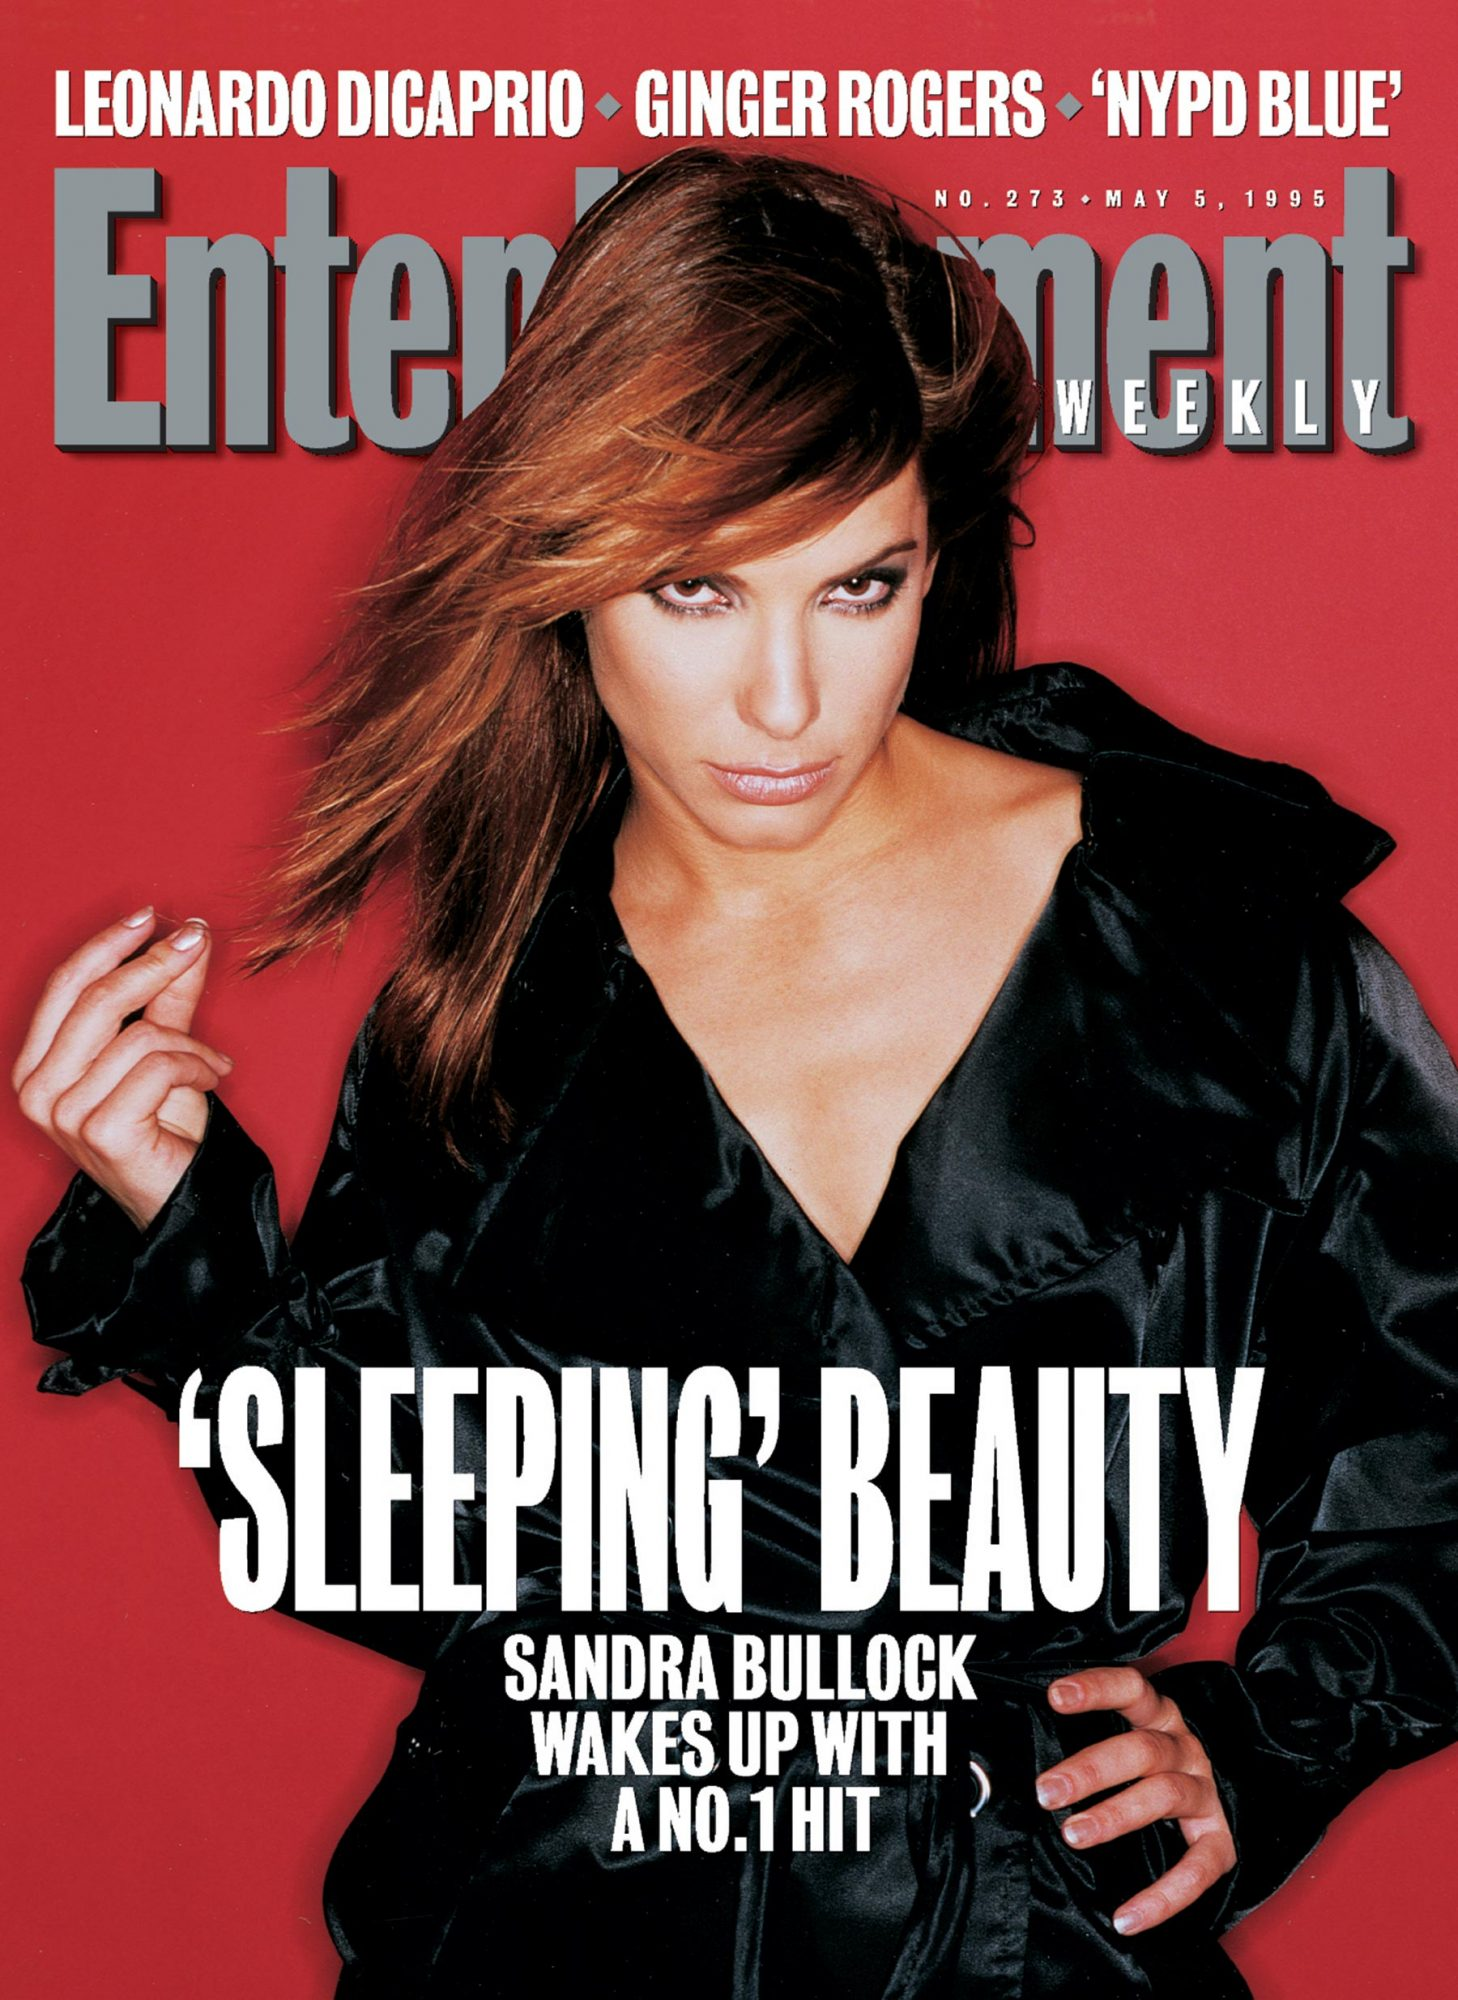 Entertainment WeeklySandra BullockMay 5, 1995Issue #273